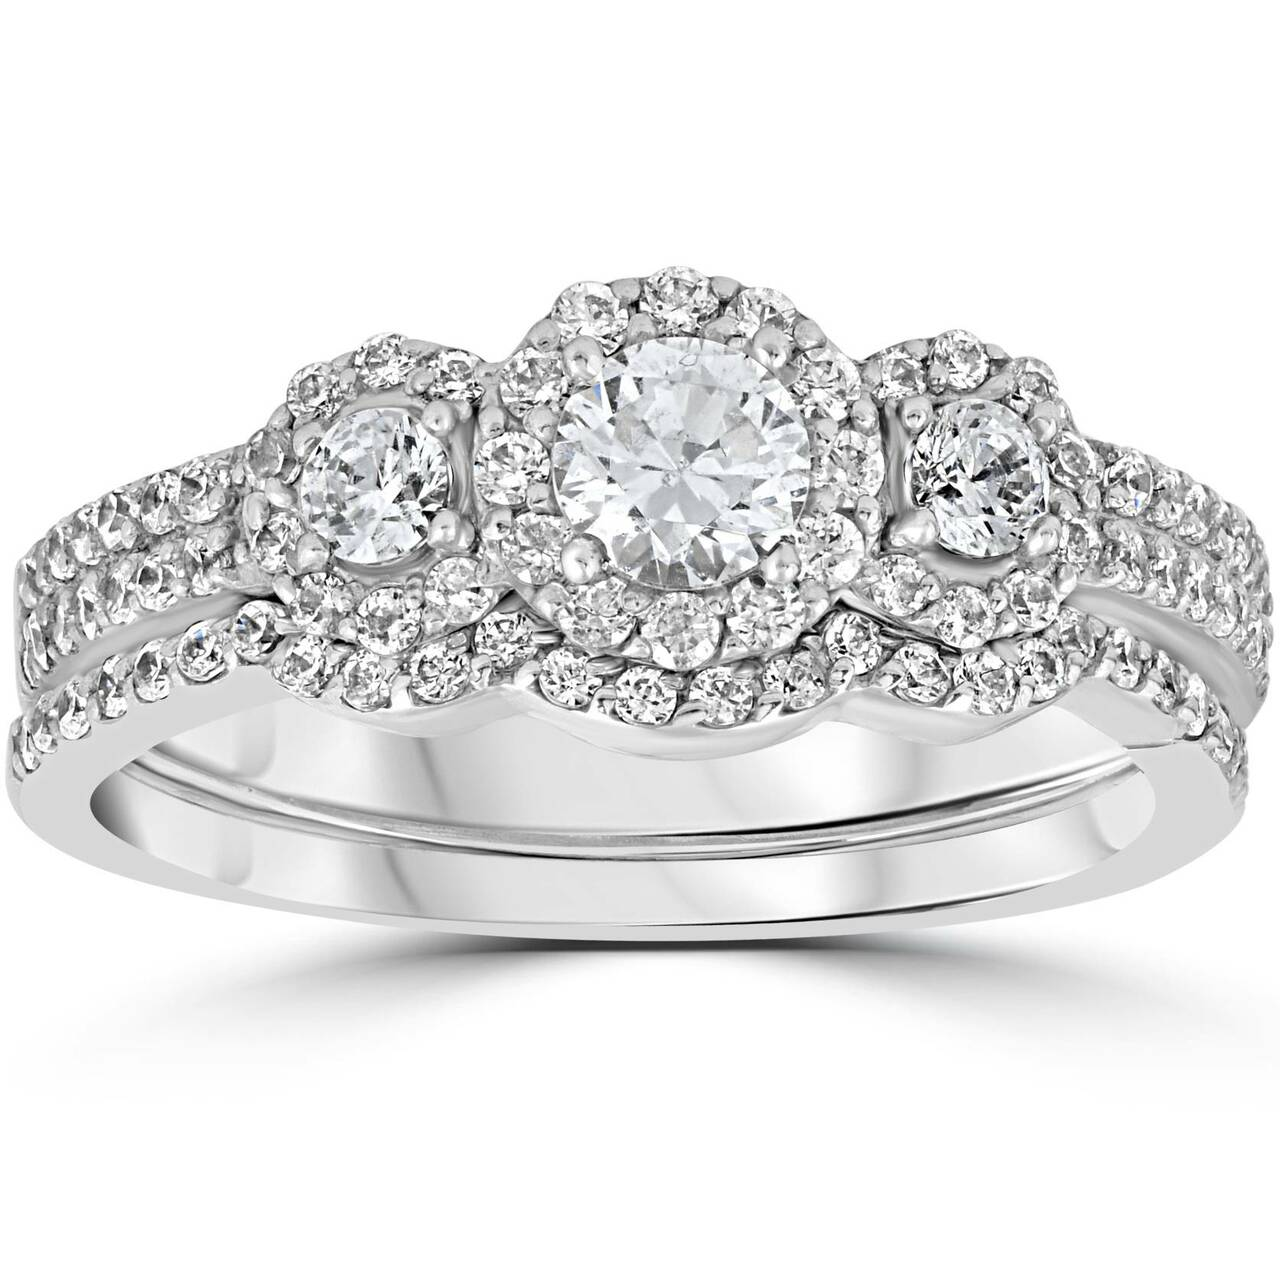 1.00CT 3 Stone Diamond Engagement Wedding Ring Set 10K White Gold (H/I,  I1 I2)